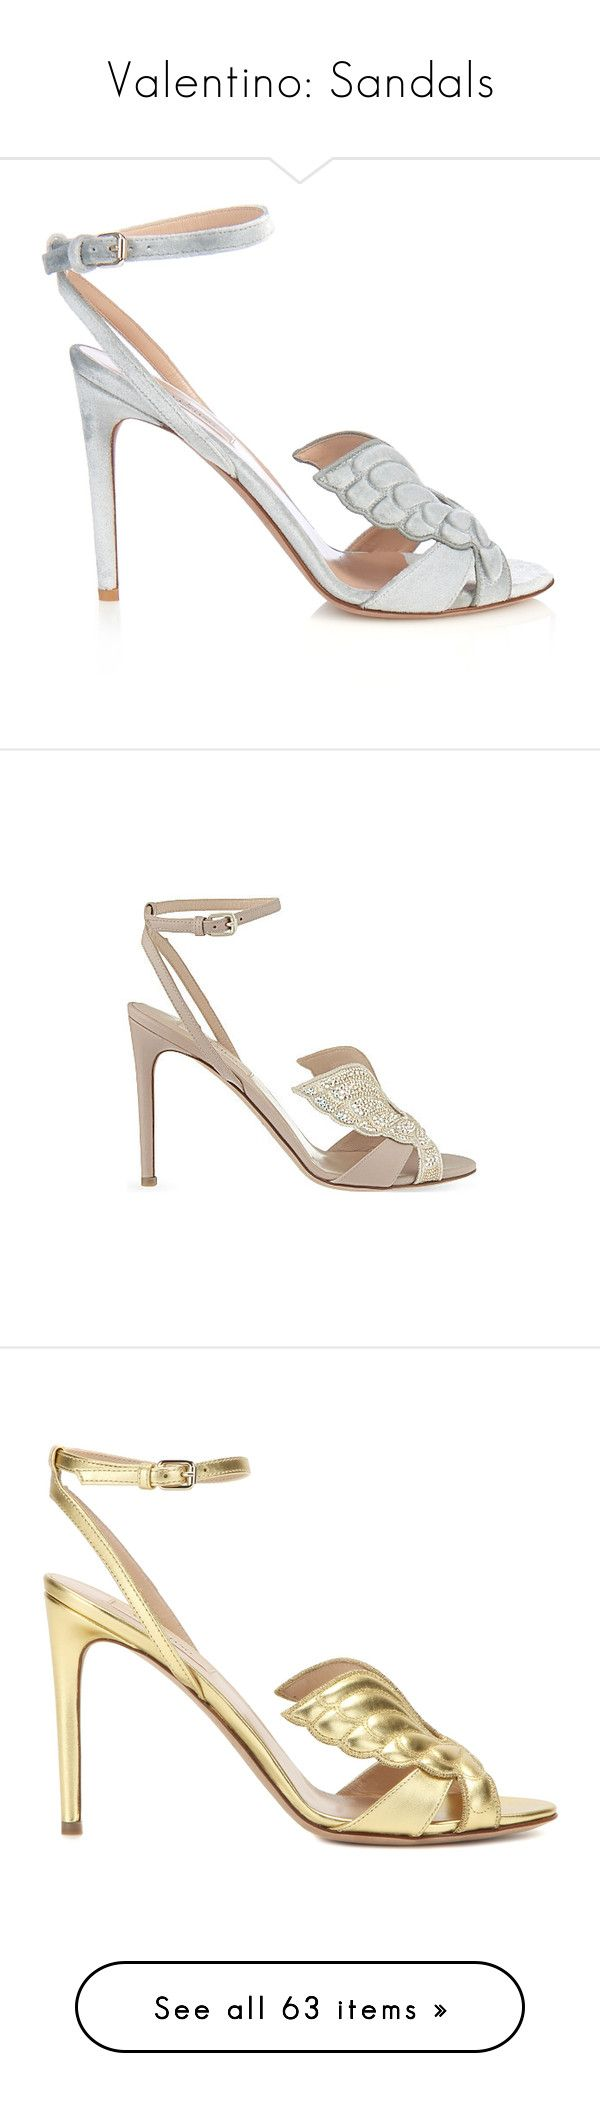 """Valentino: Sandals"" by livnd ❤ liked on Polyvore featuring shoes, sandals, heels, grey heeled shoes, angel wing shoes, gray shoes, angel wing sandals, grey shoes, valentino sandals and leather sole sandals"